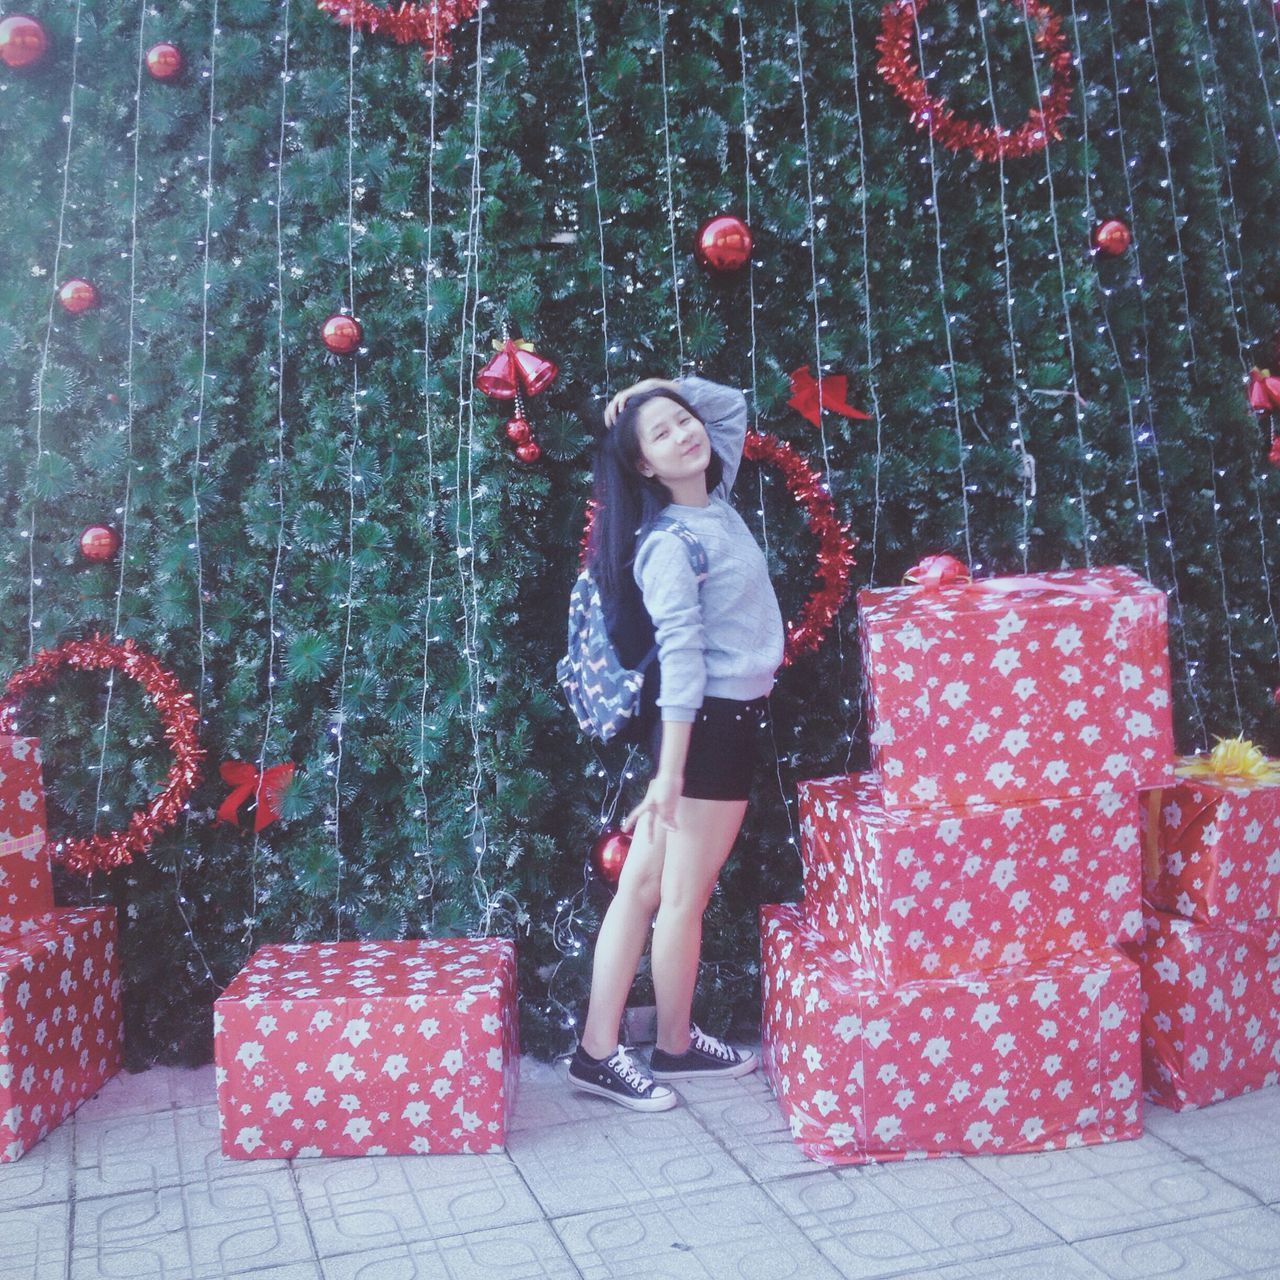 🎄 Christmas Tree Christmasiscomingsoon Winterstyle Iphonegraphy Takenbyiphone Outfit VSCO Danangcity Vincomcenter Showcase: December